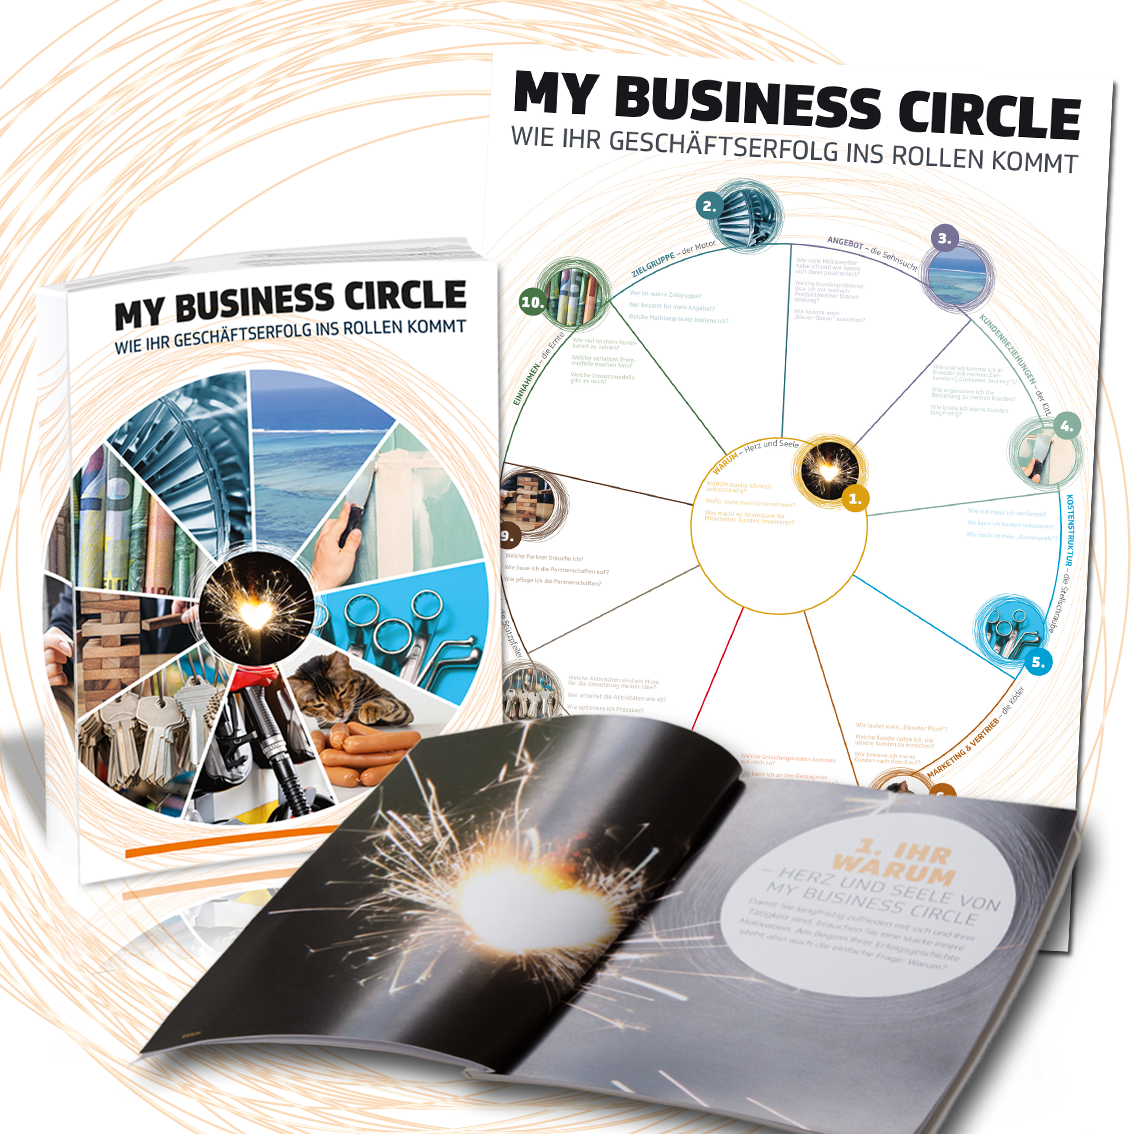 https://welcome.mybusinesscircle.de/wp-content/uploads/2019/06/Buch-Teaser-.png